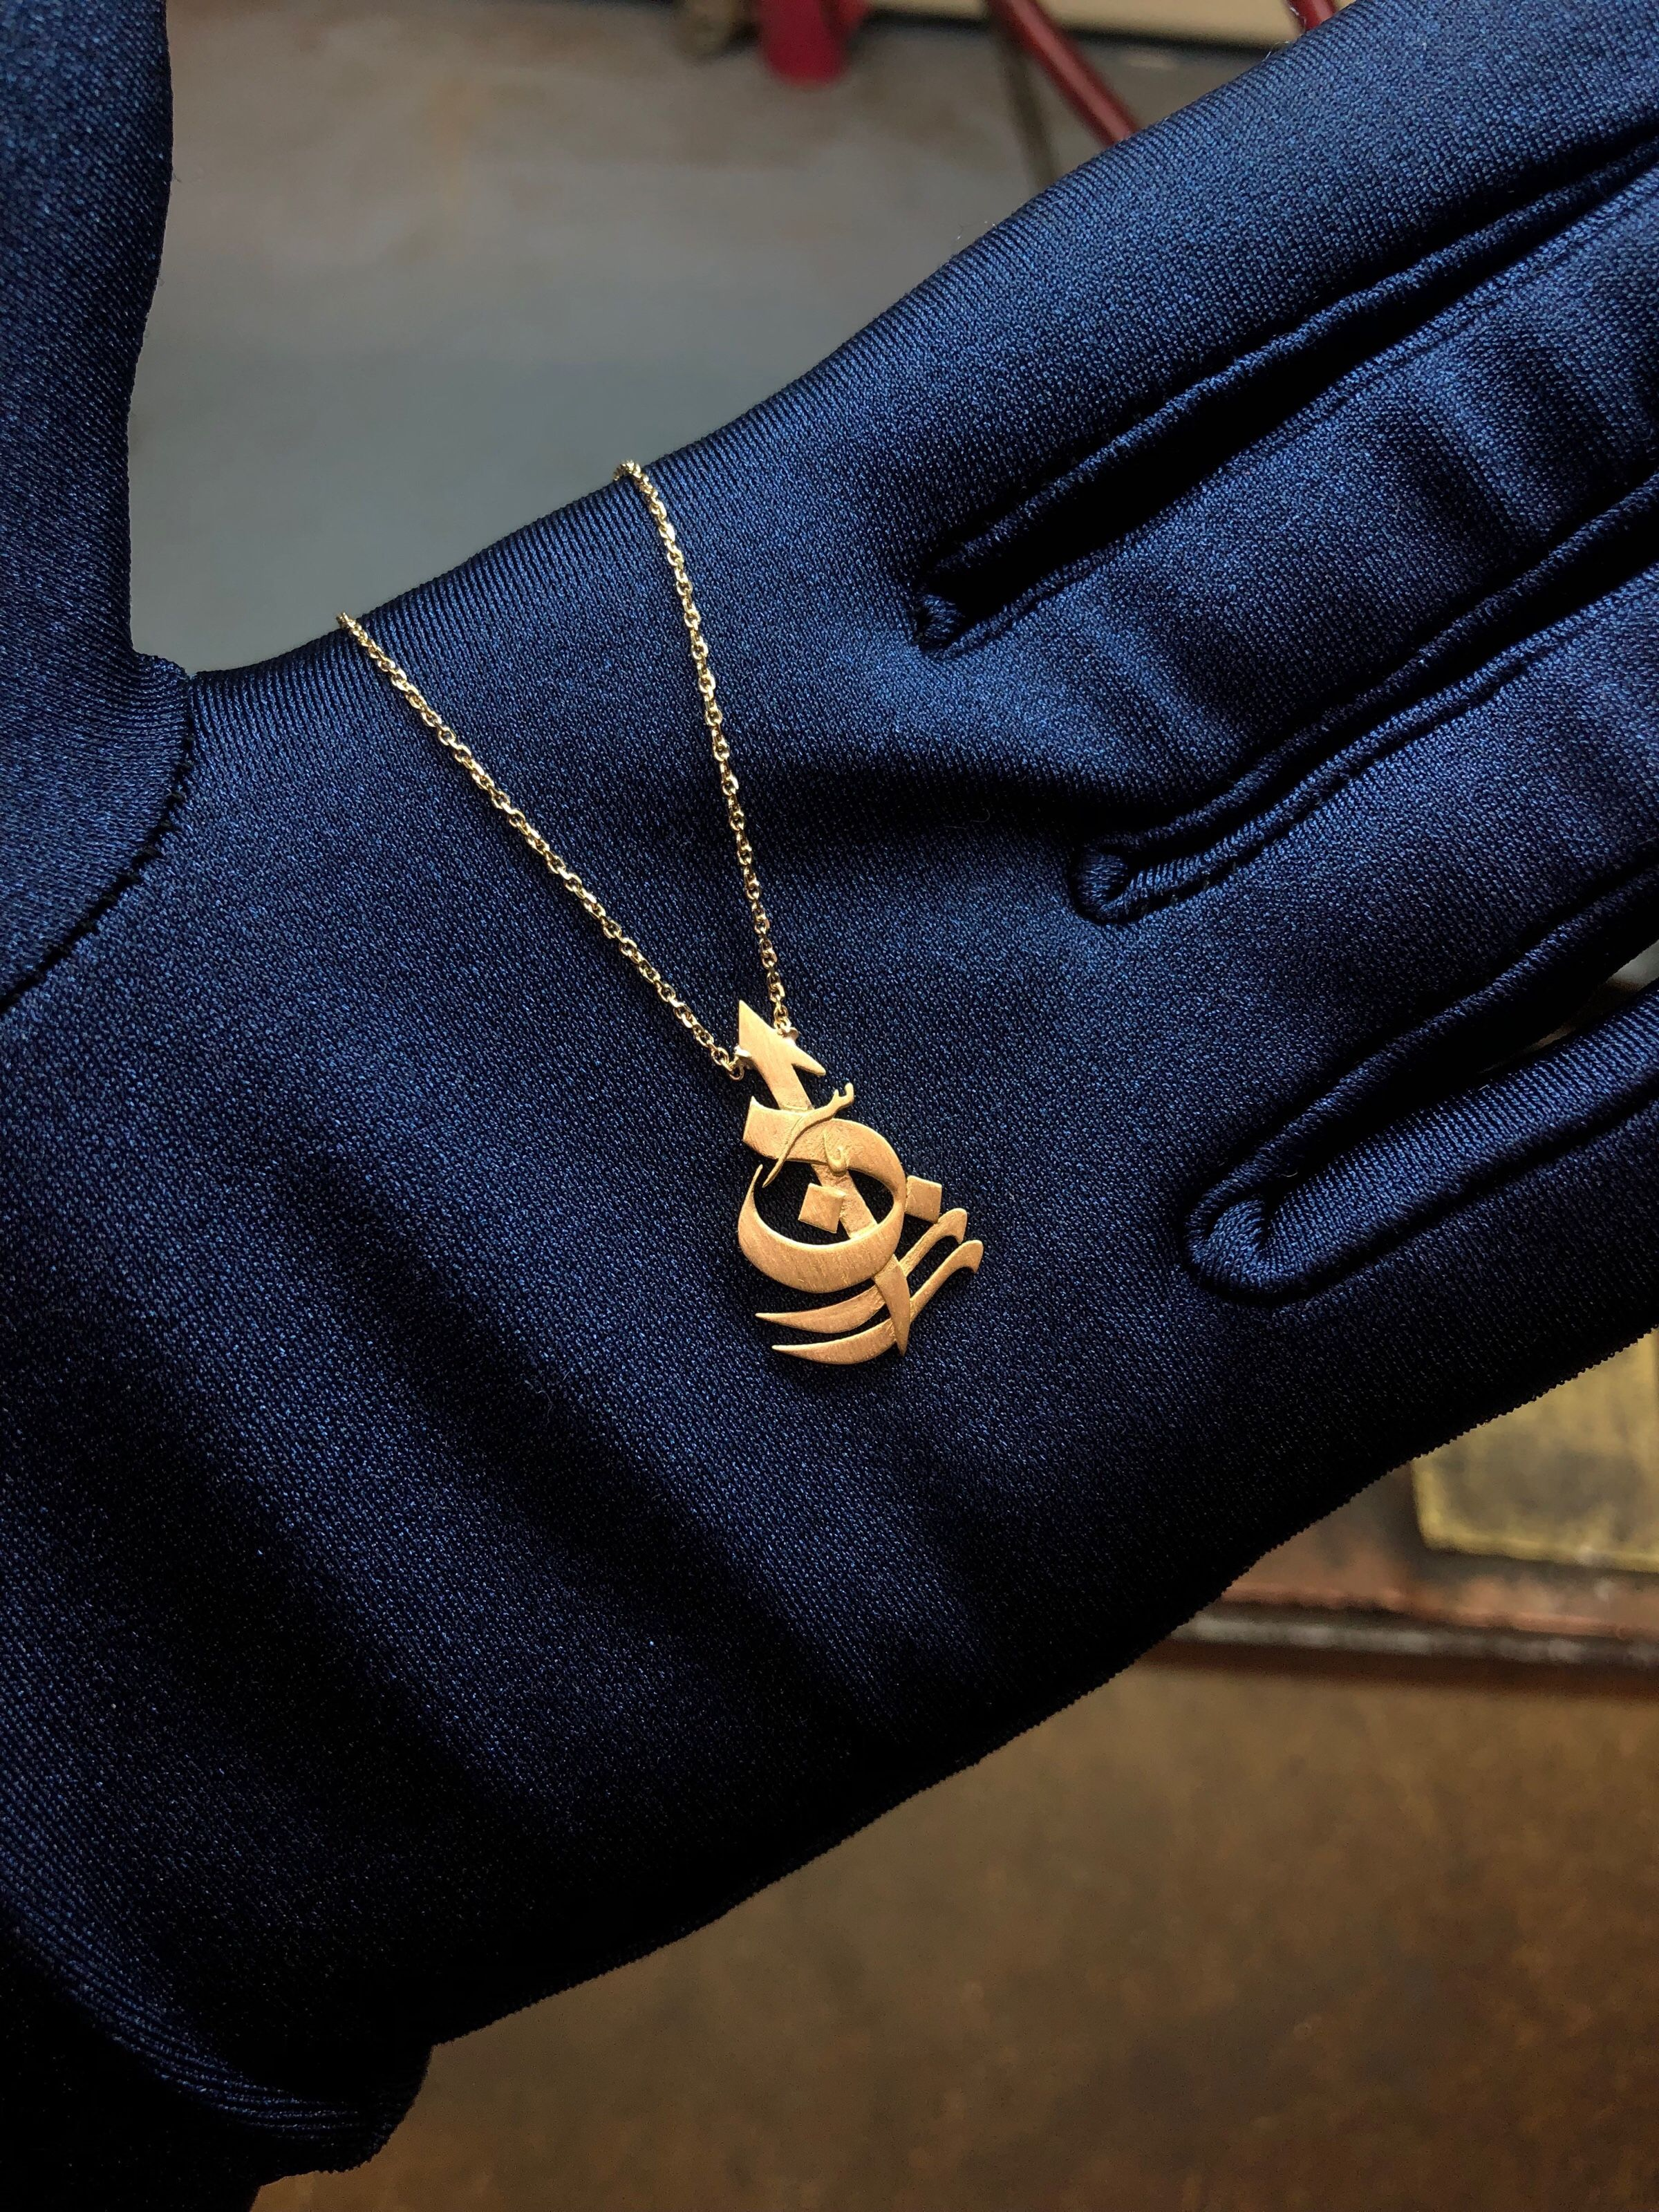 Pin By Ragail On وعد In 2021 Adidas Matching Set Protein Breakfast Recipes Necklace